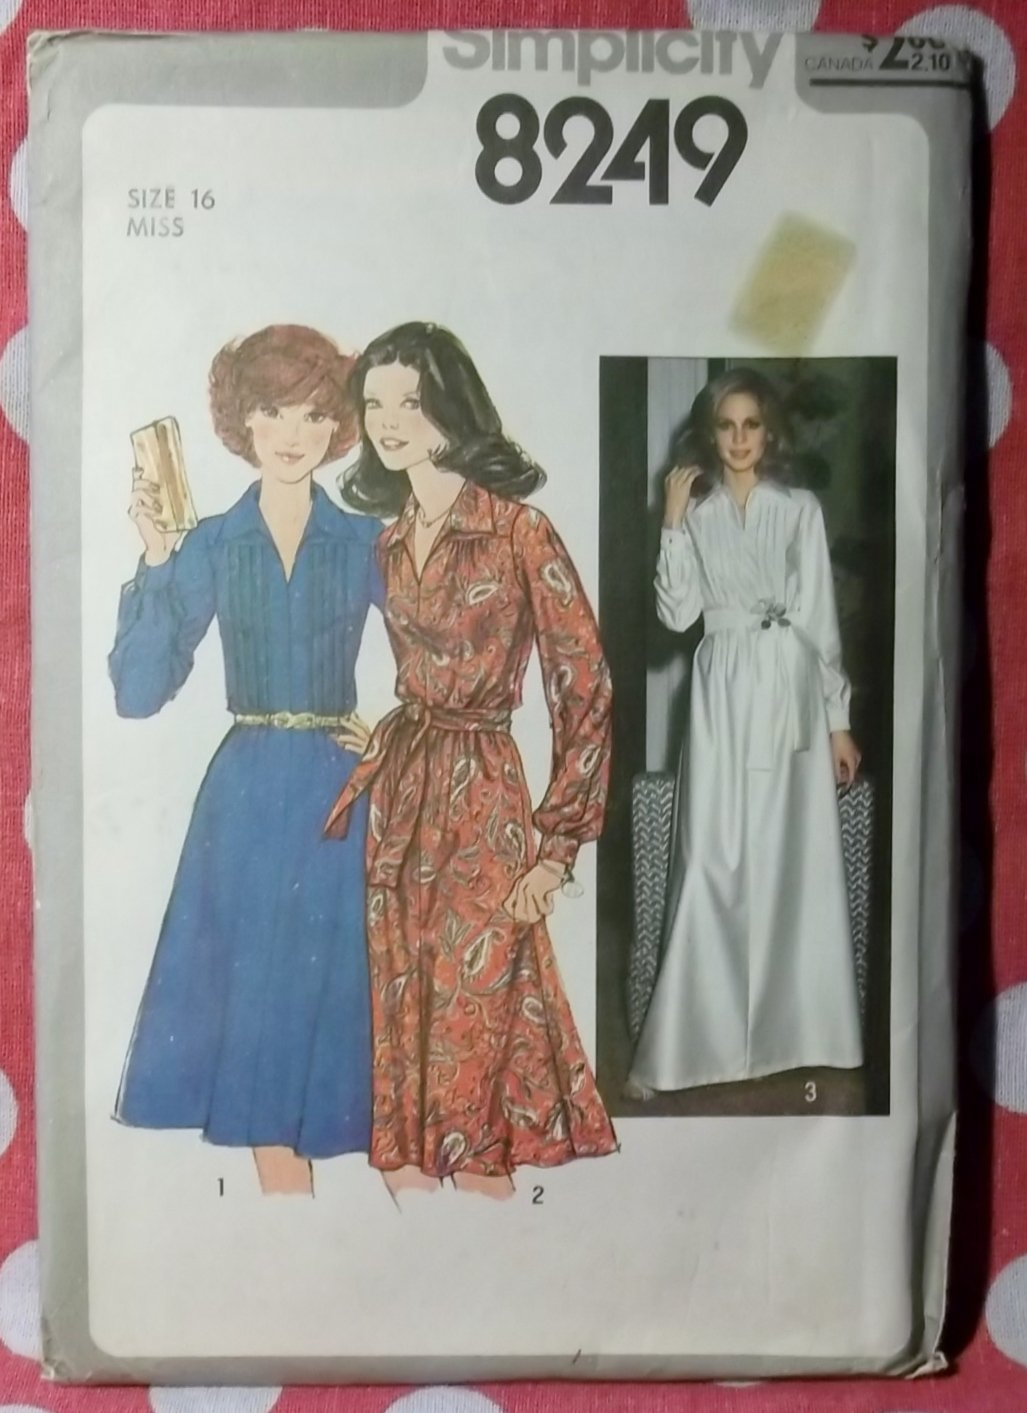 Vintage 1977 Simplicity 8249 Sewing Pattern, Maxi or Knee Length Dress, Sz 16, Uncut